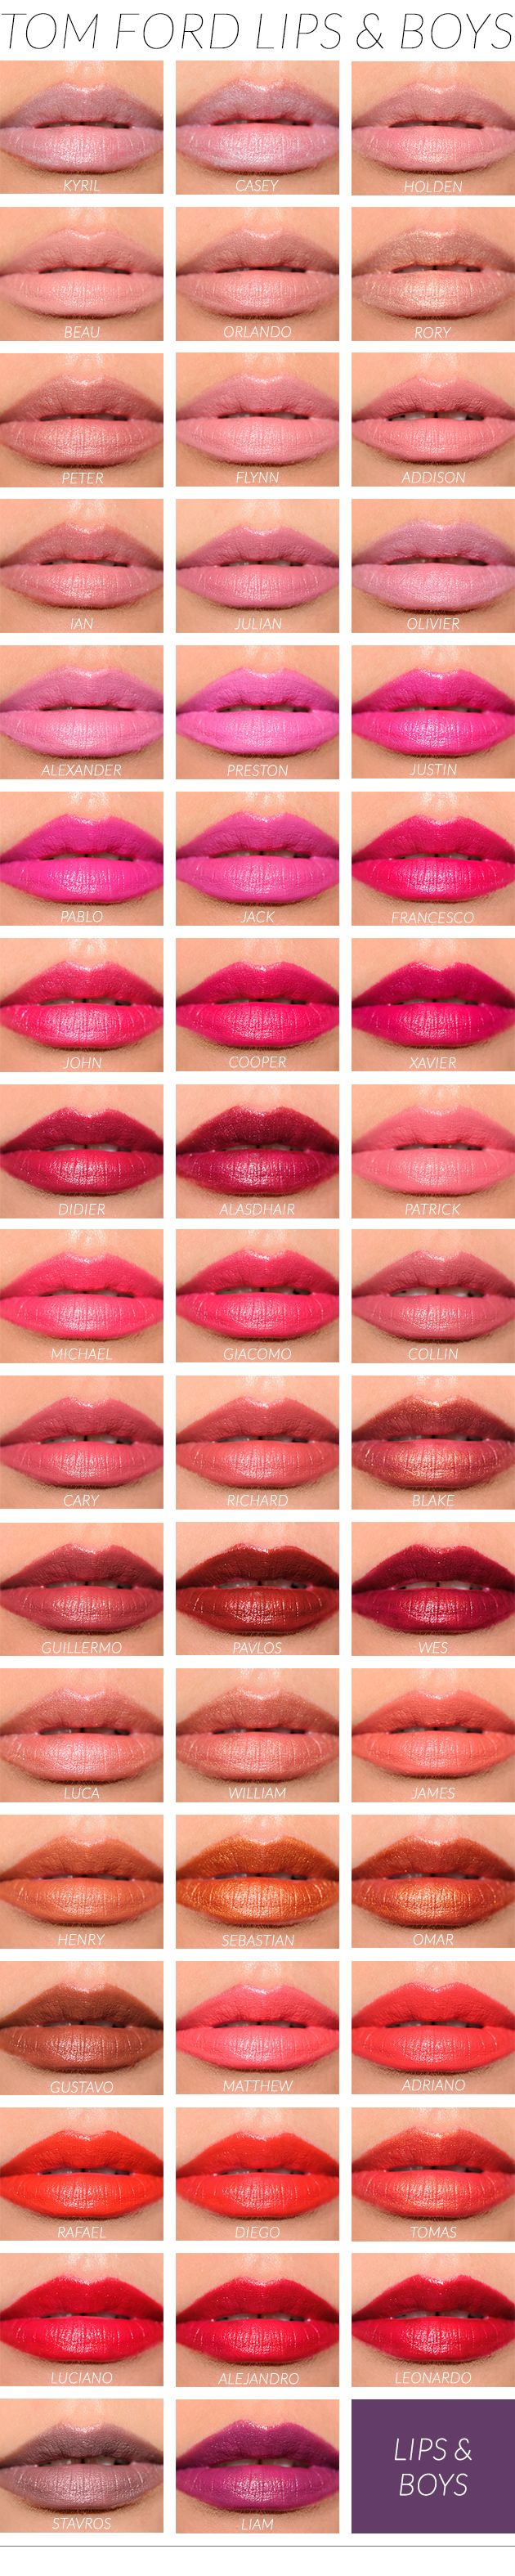 Tom Ford Lips & Boys Lip Swatches Gorgeous makeup/ False lashes/ Sexy Look/ Makeup Tutorial/ Makeup Ideas/ Foundation/ Eyes/ Lips